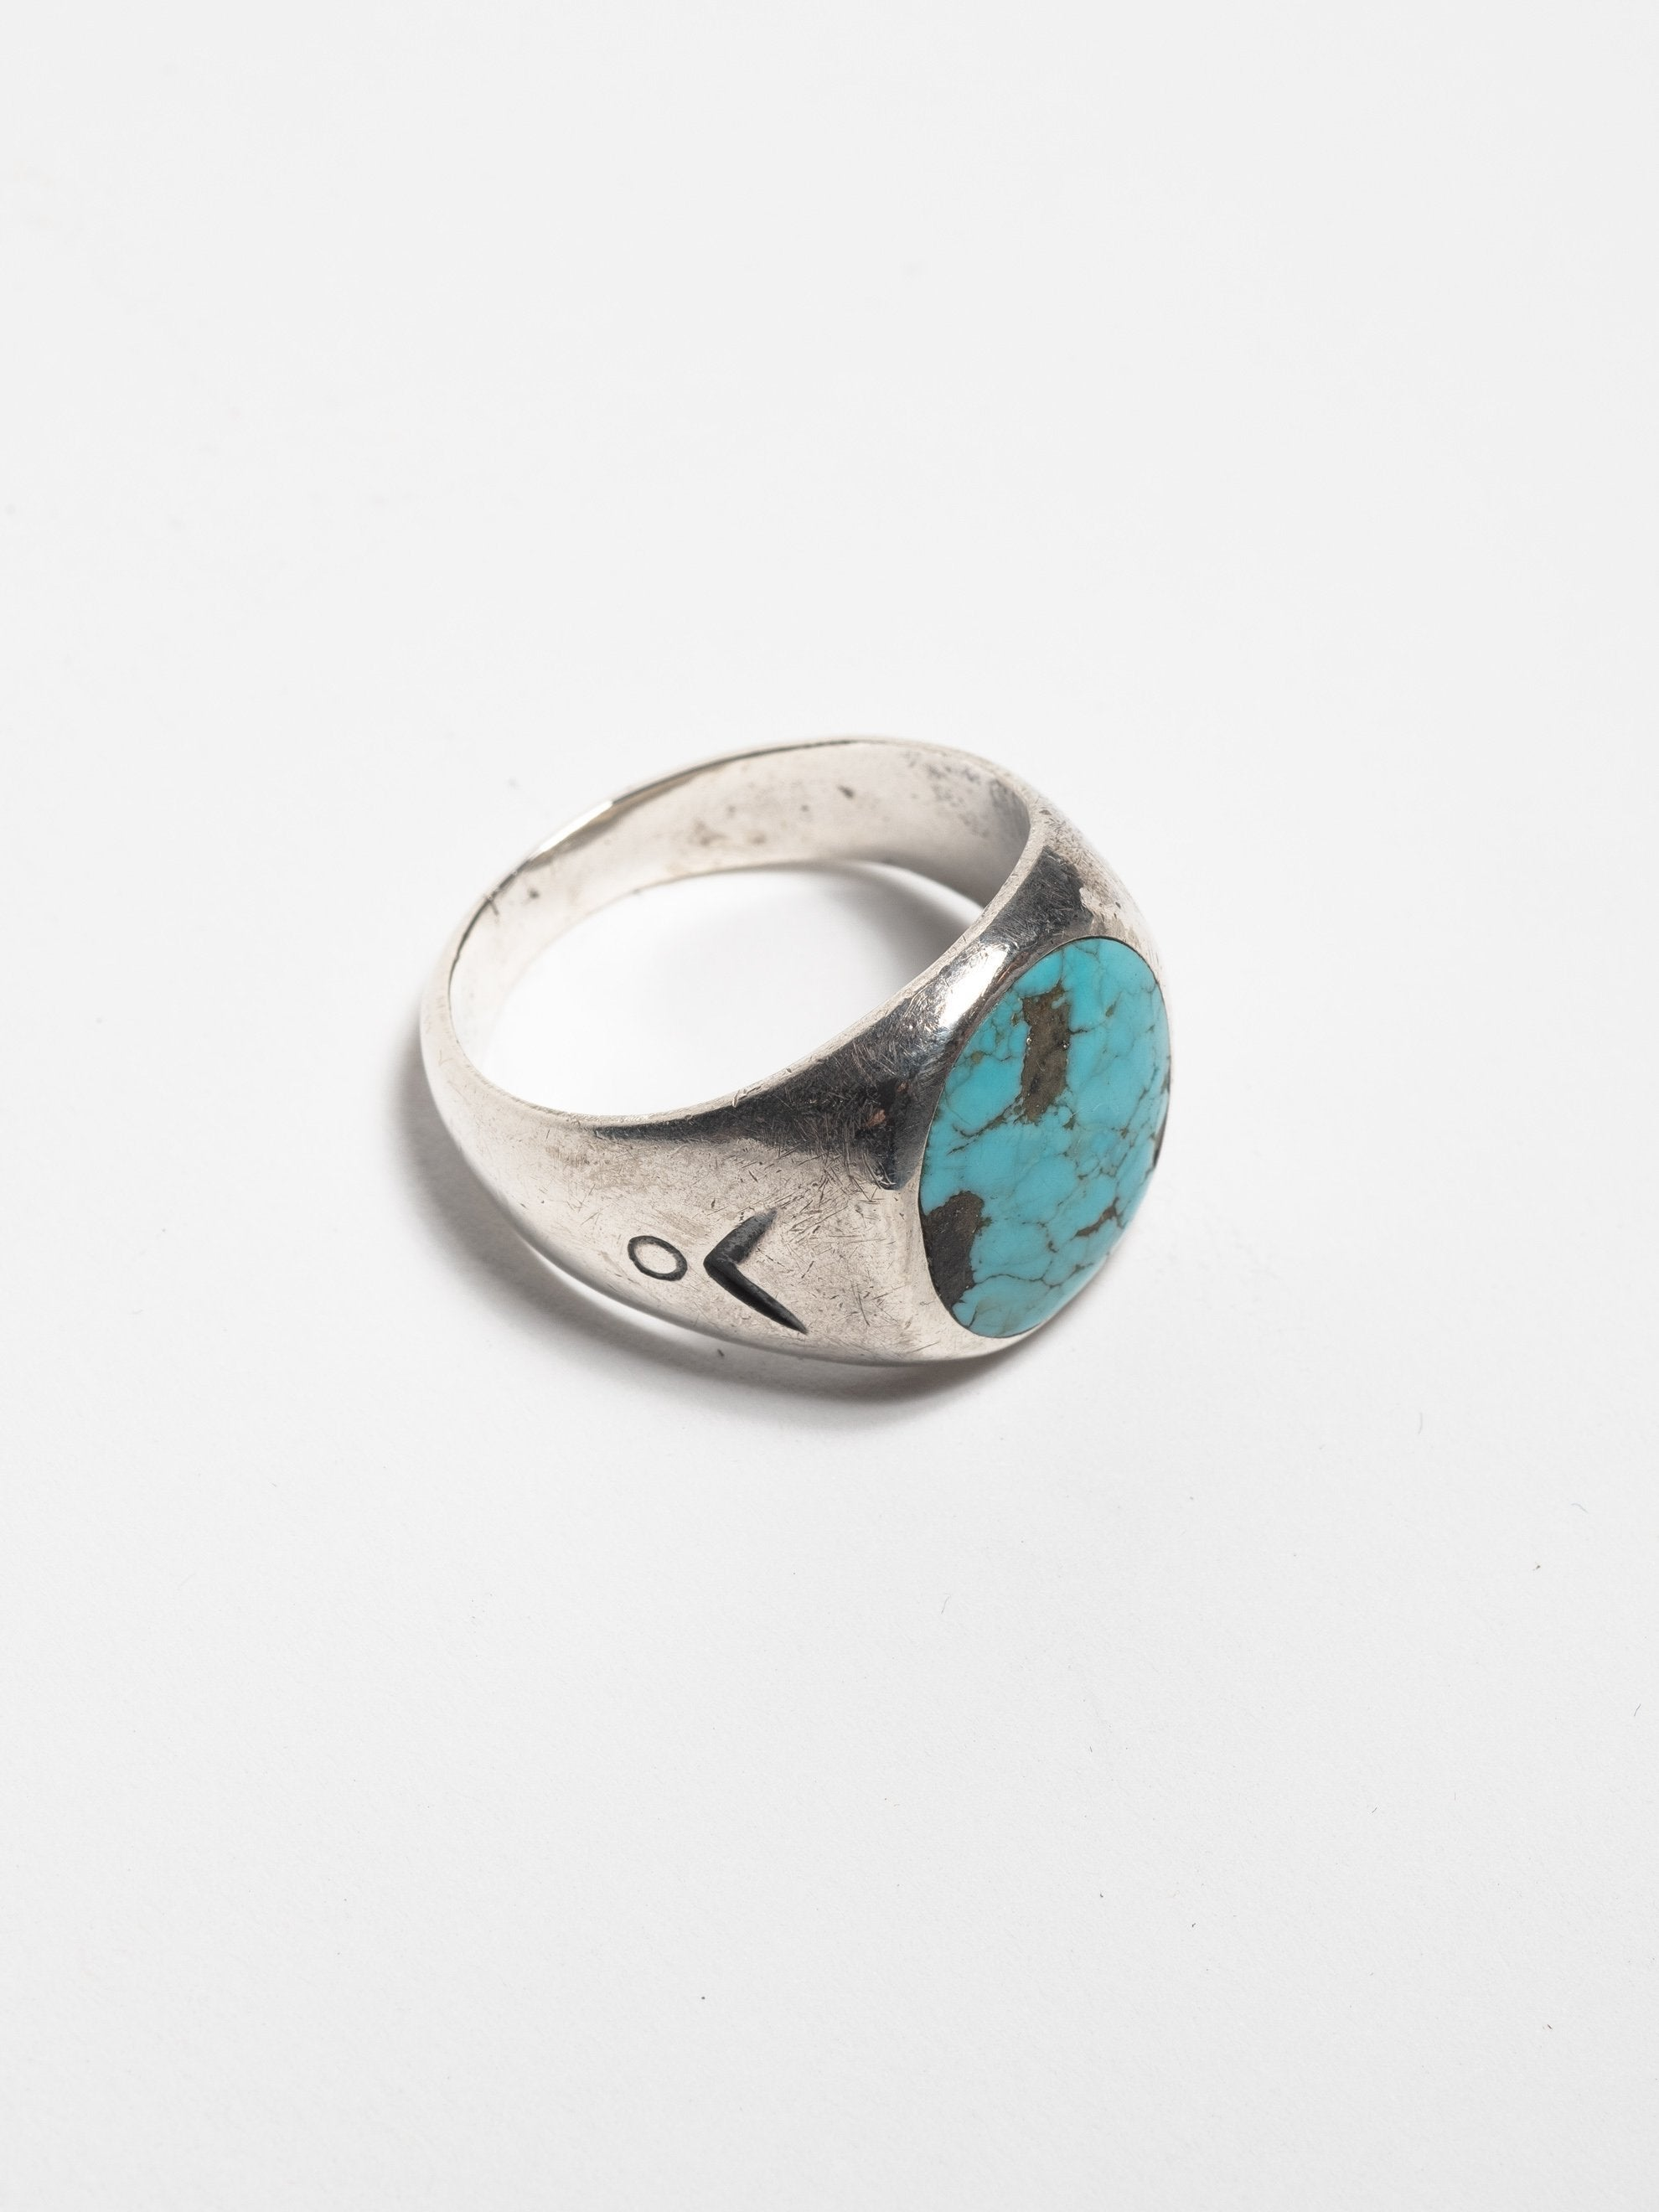 Sterling Silver Vintage Navajo Sterling Men's Ring with hand stamped design & inset turquoise stone 3